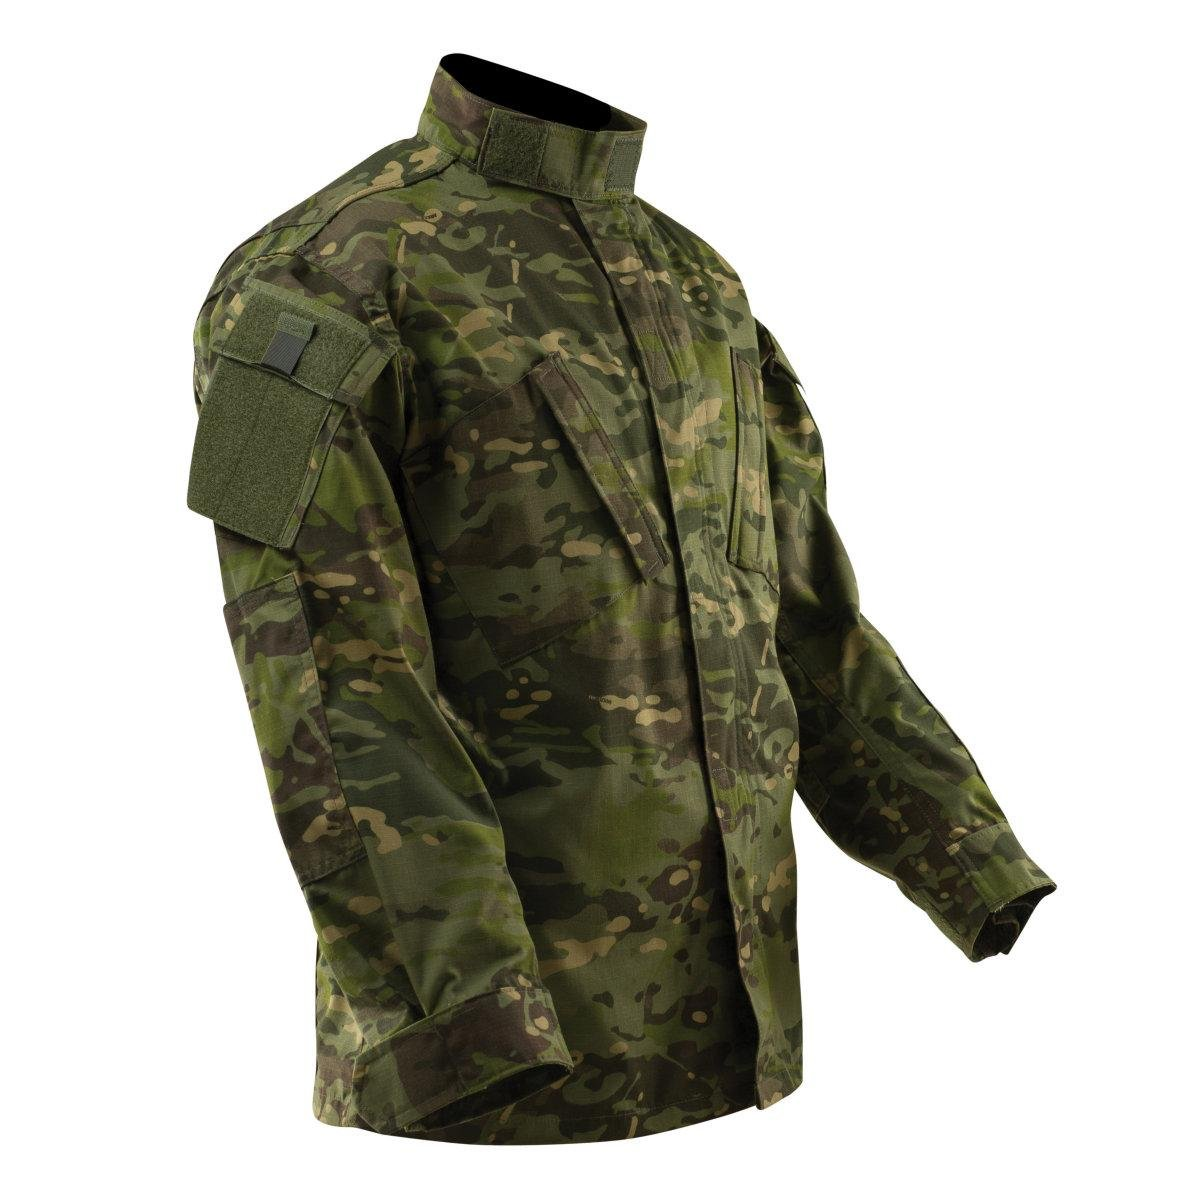 TRU-SPEC Tactical Response Shirt Atlanco TS1262-1390